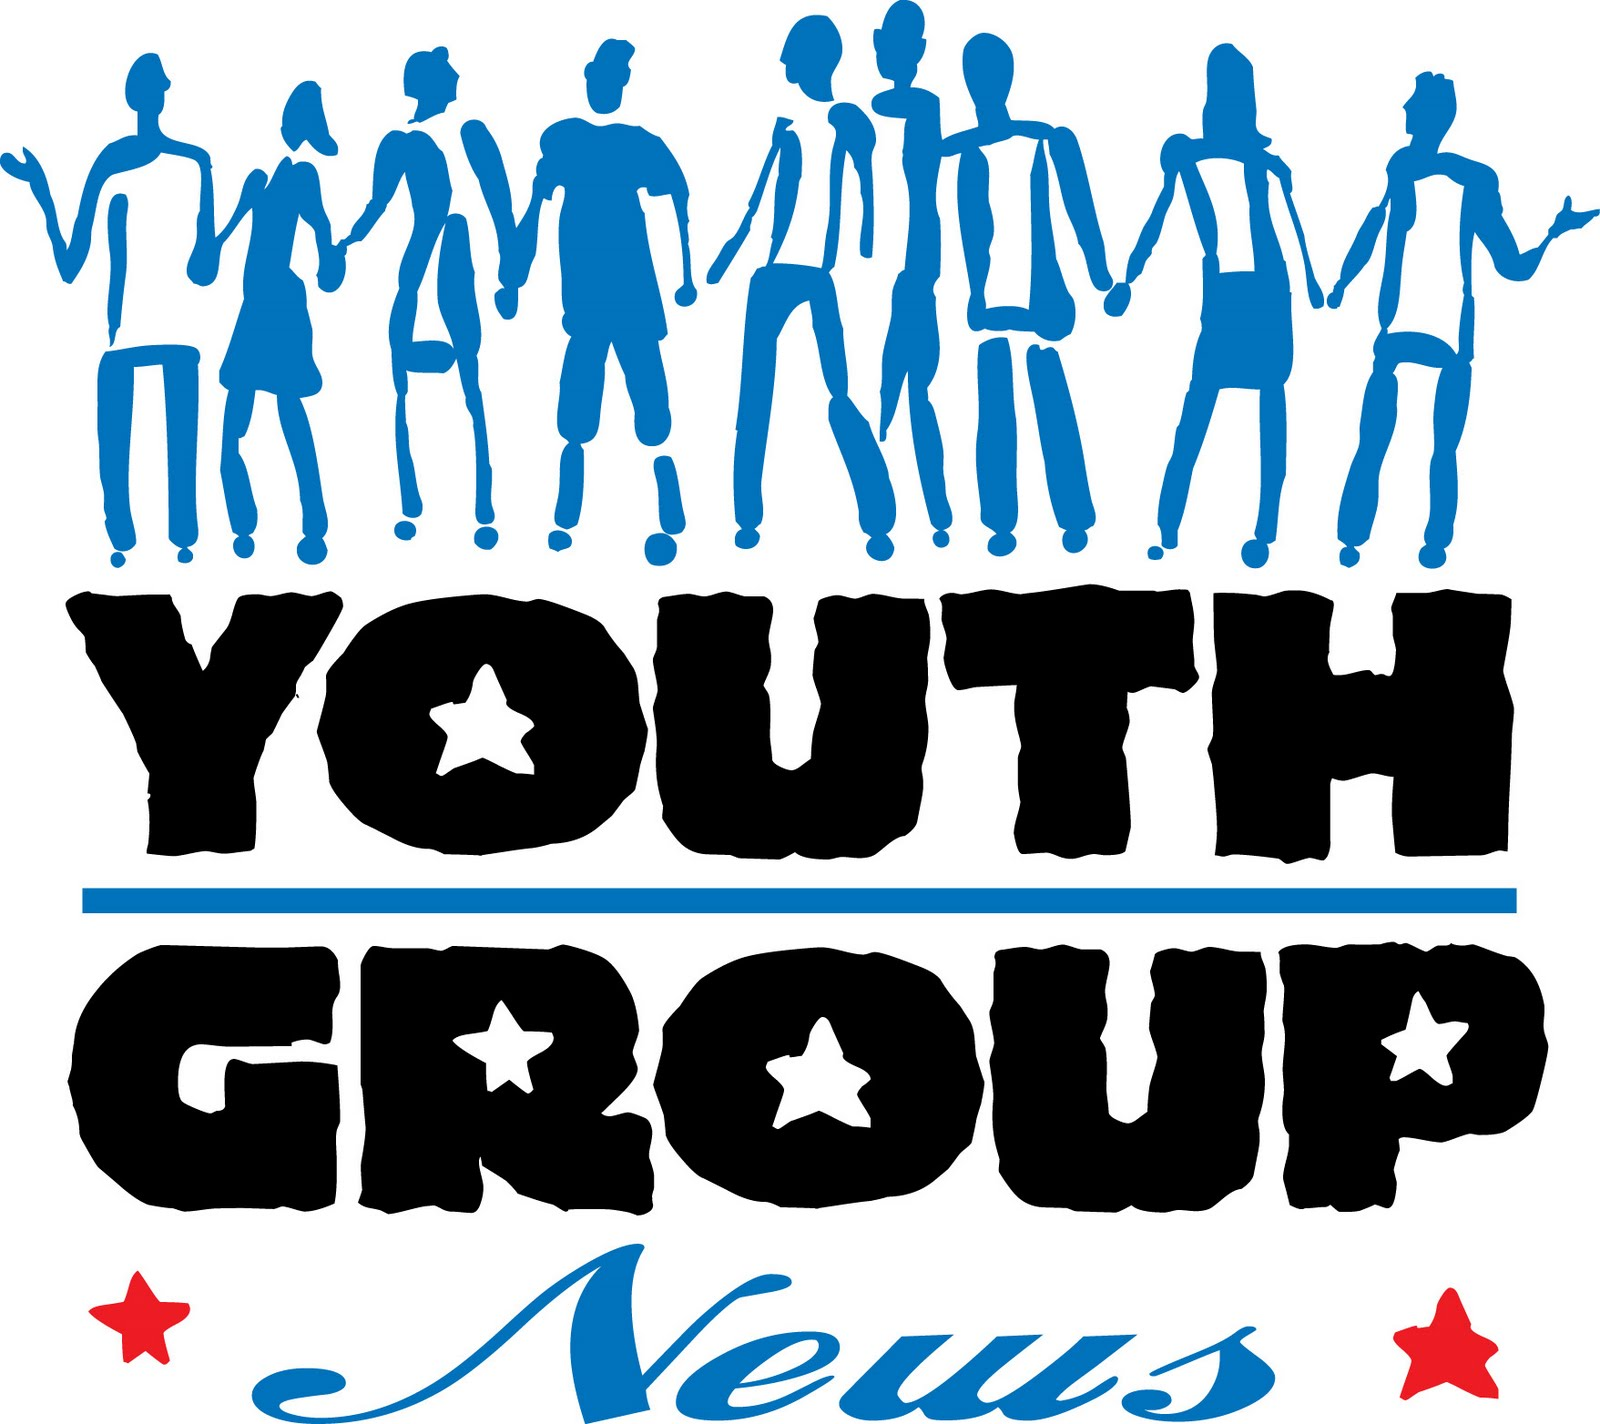 youth clipart